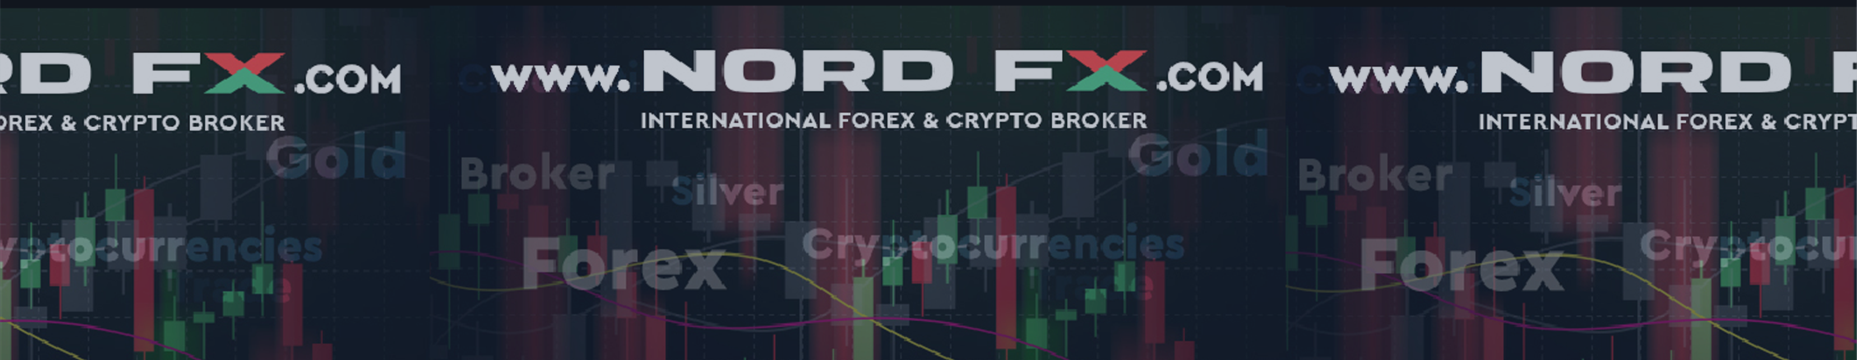 Forex Forecast and Cryptocurrencies Forecast for February 01-05, 2021